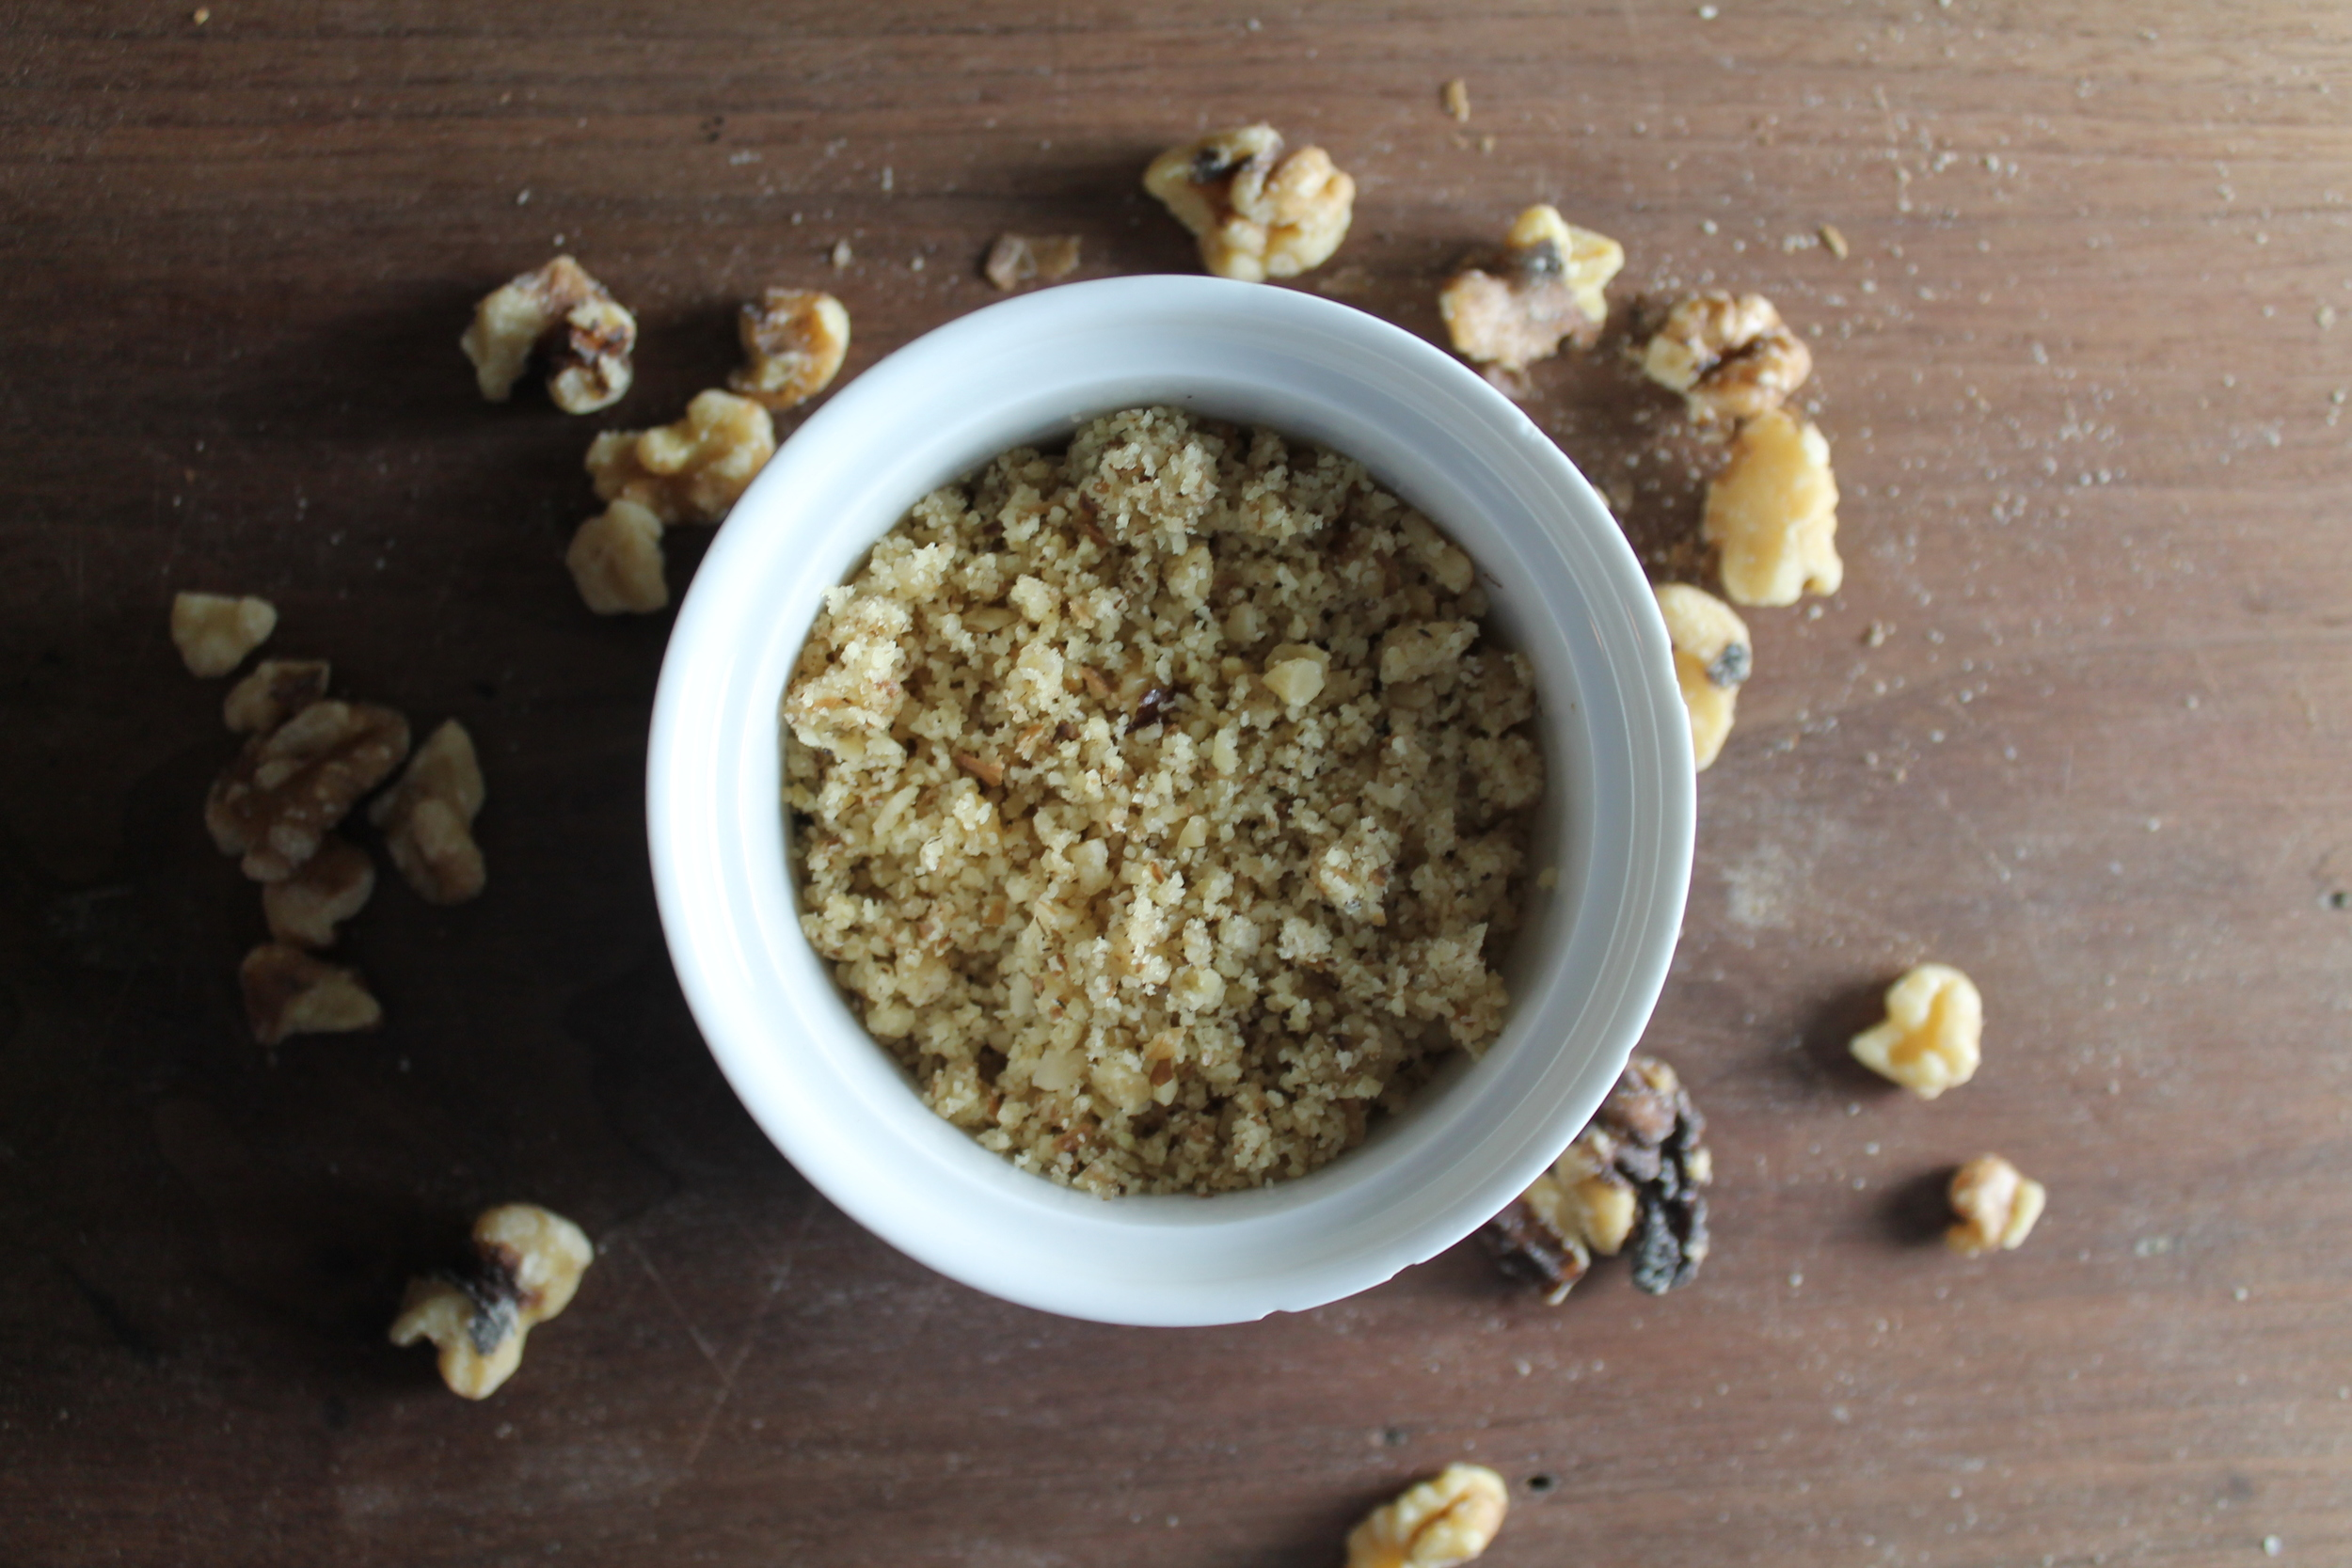 Crushed Walnuts | www.hungryinlove.com